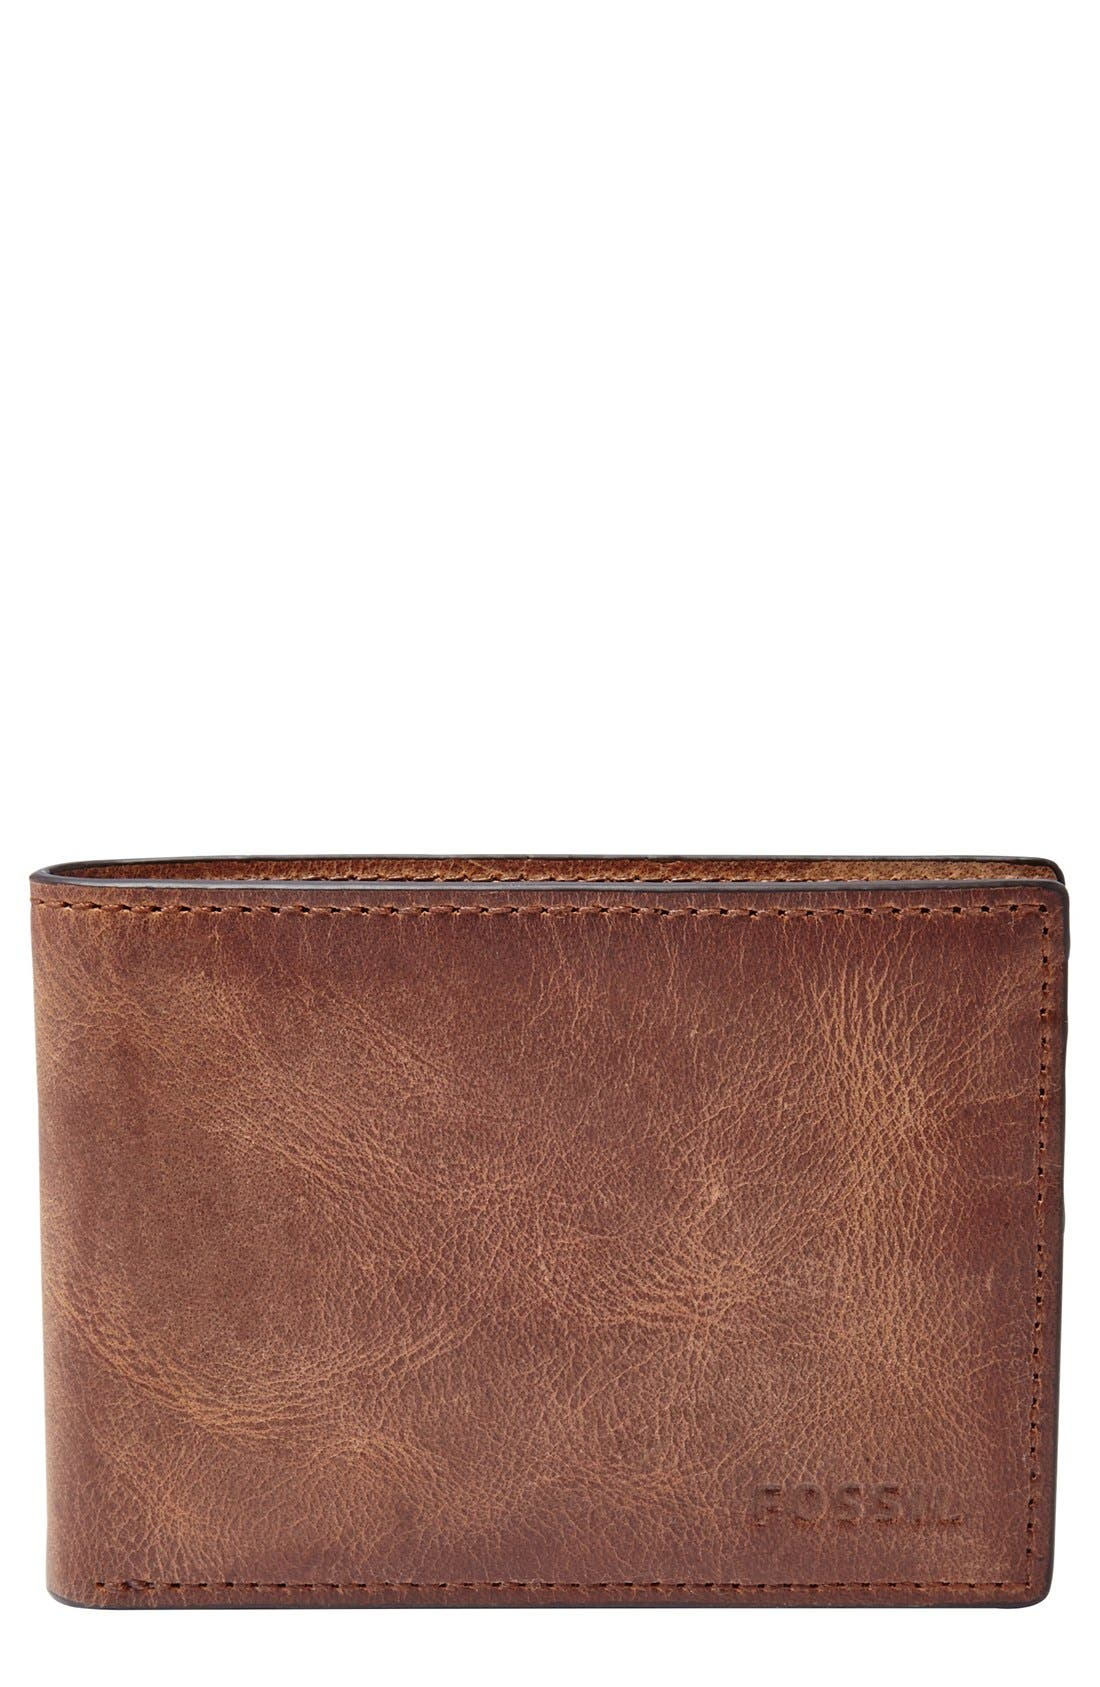 'Derrick' Leather Front Pocket Bifold Wallet,                         Main,                         color, 200